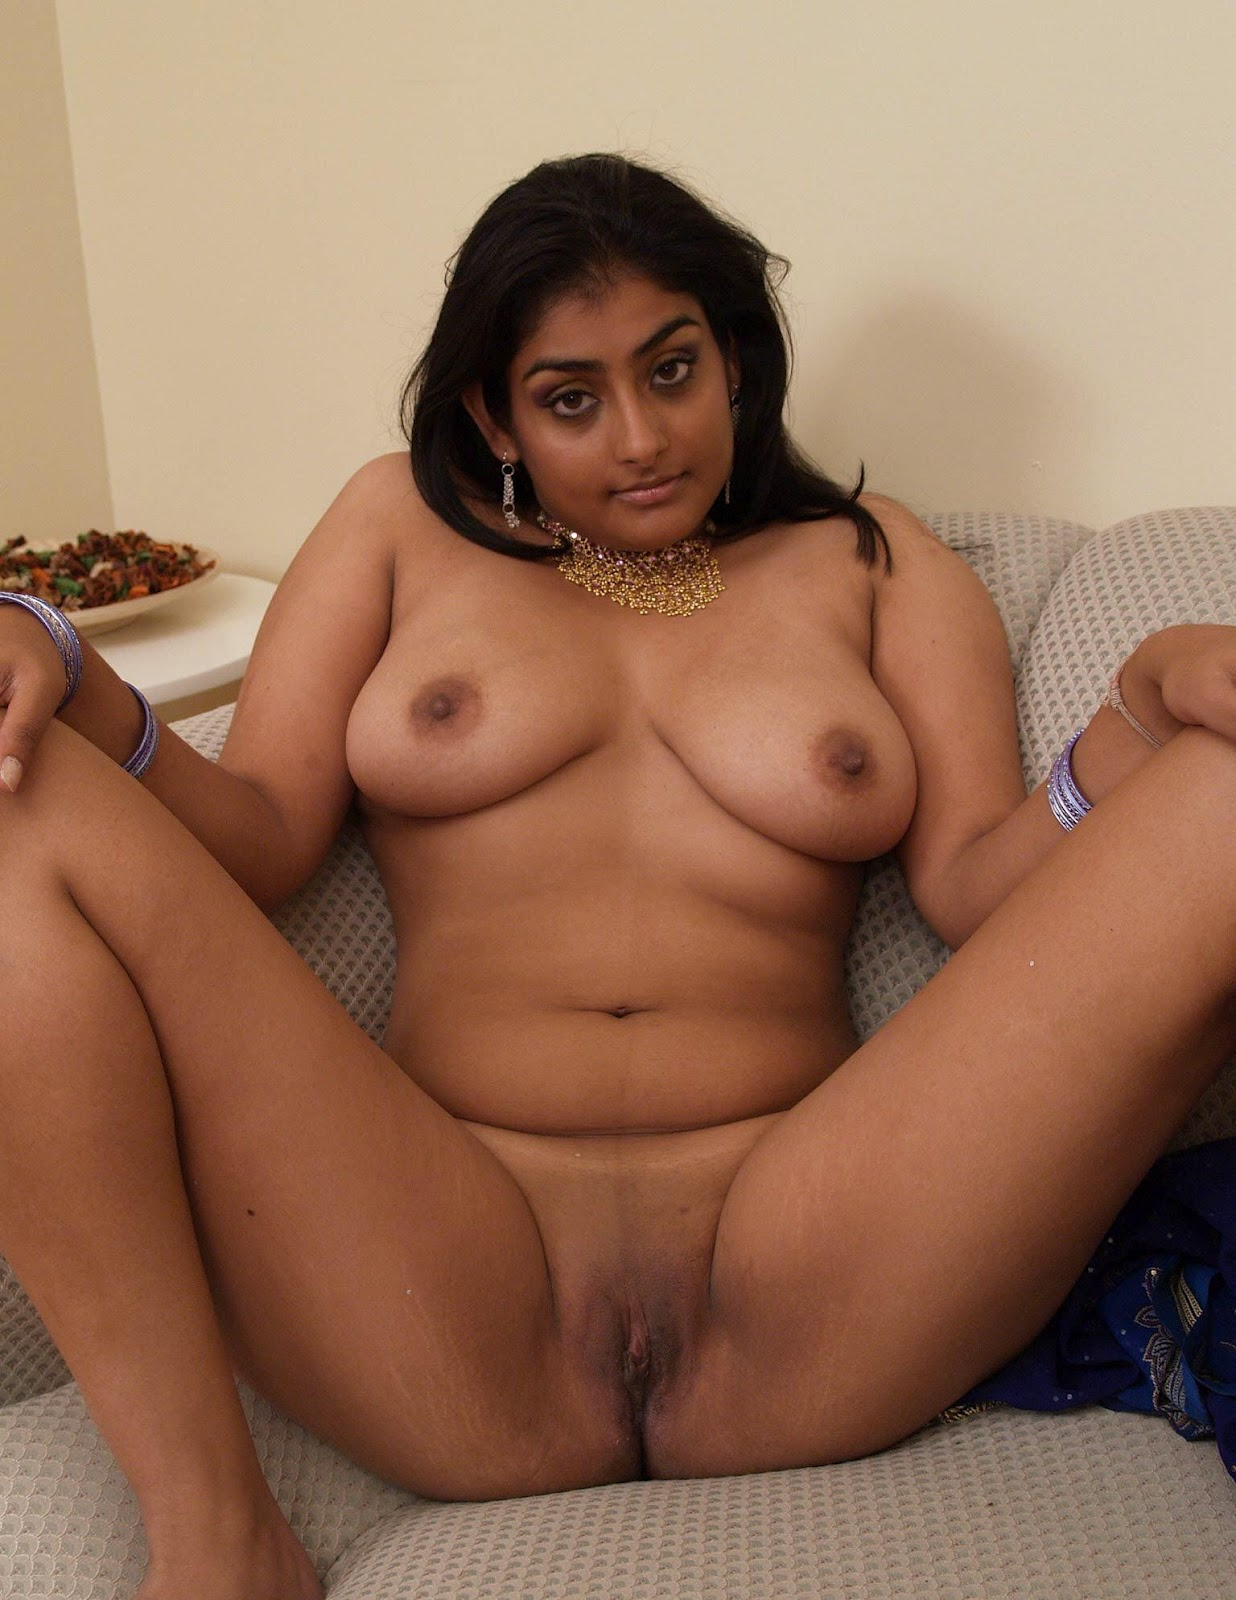 Best Desi XXX !!!!: Naked Indian Desi Girls, Married women!!! Part 10